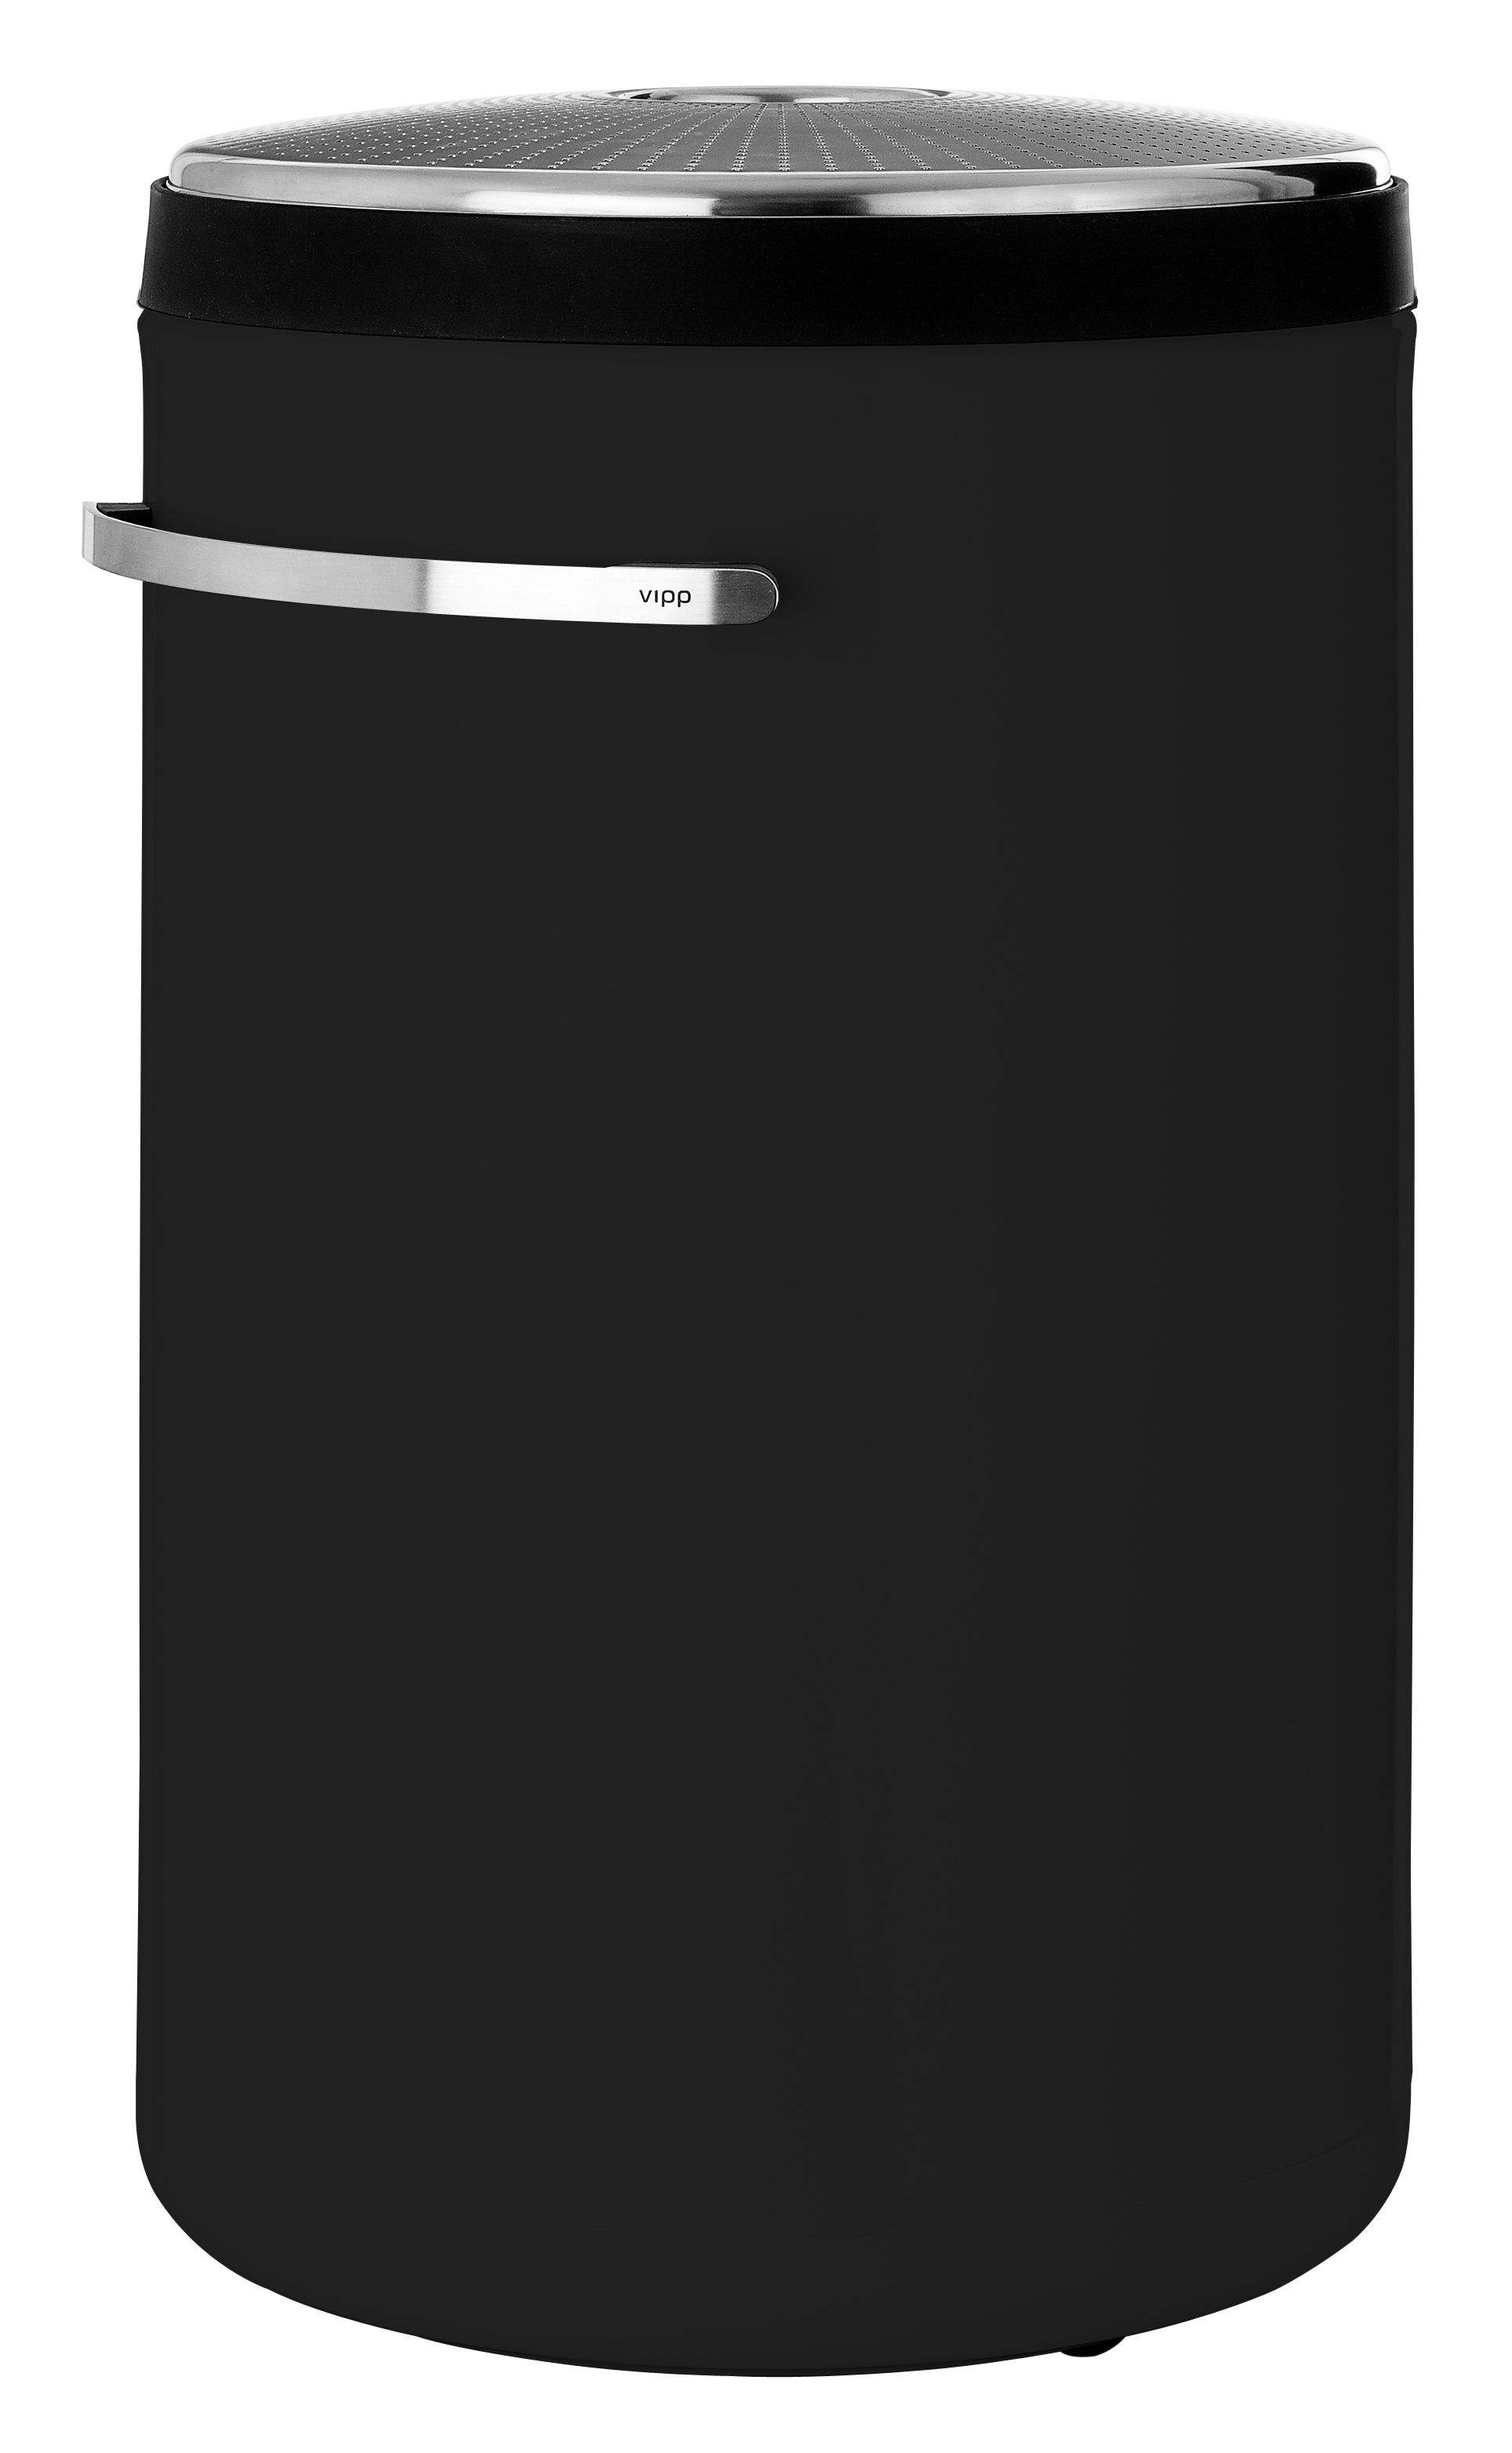 Vipp441 Laundry basket Black by Vipp | Made In Design UK